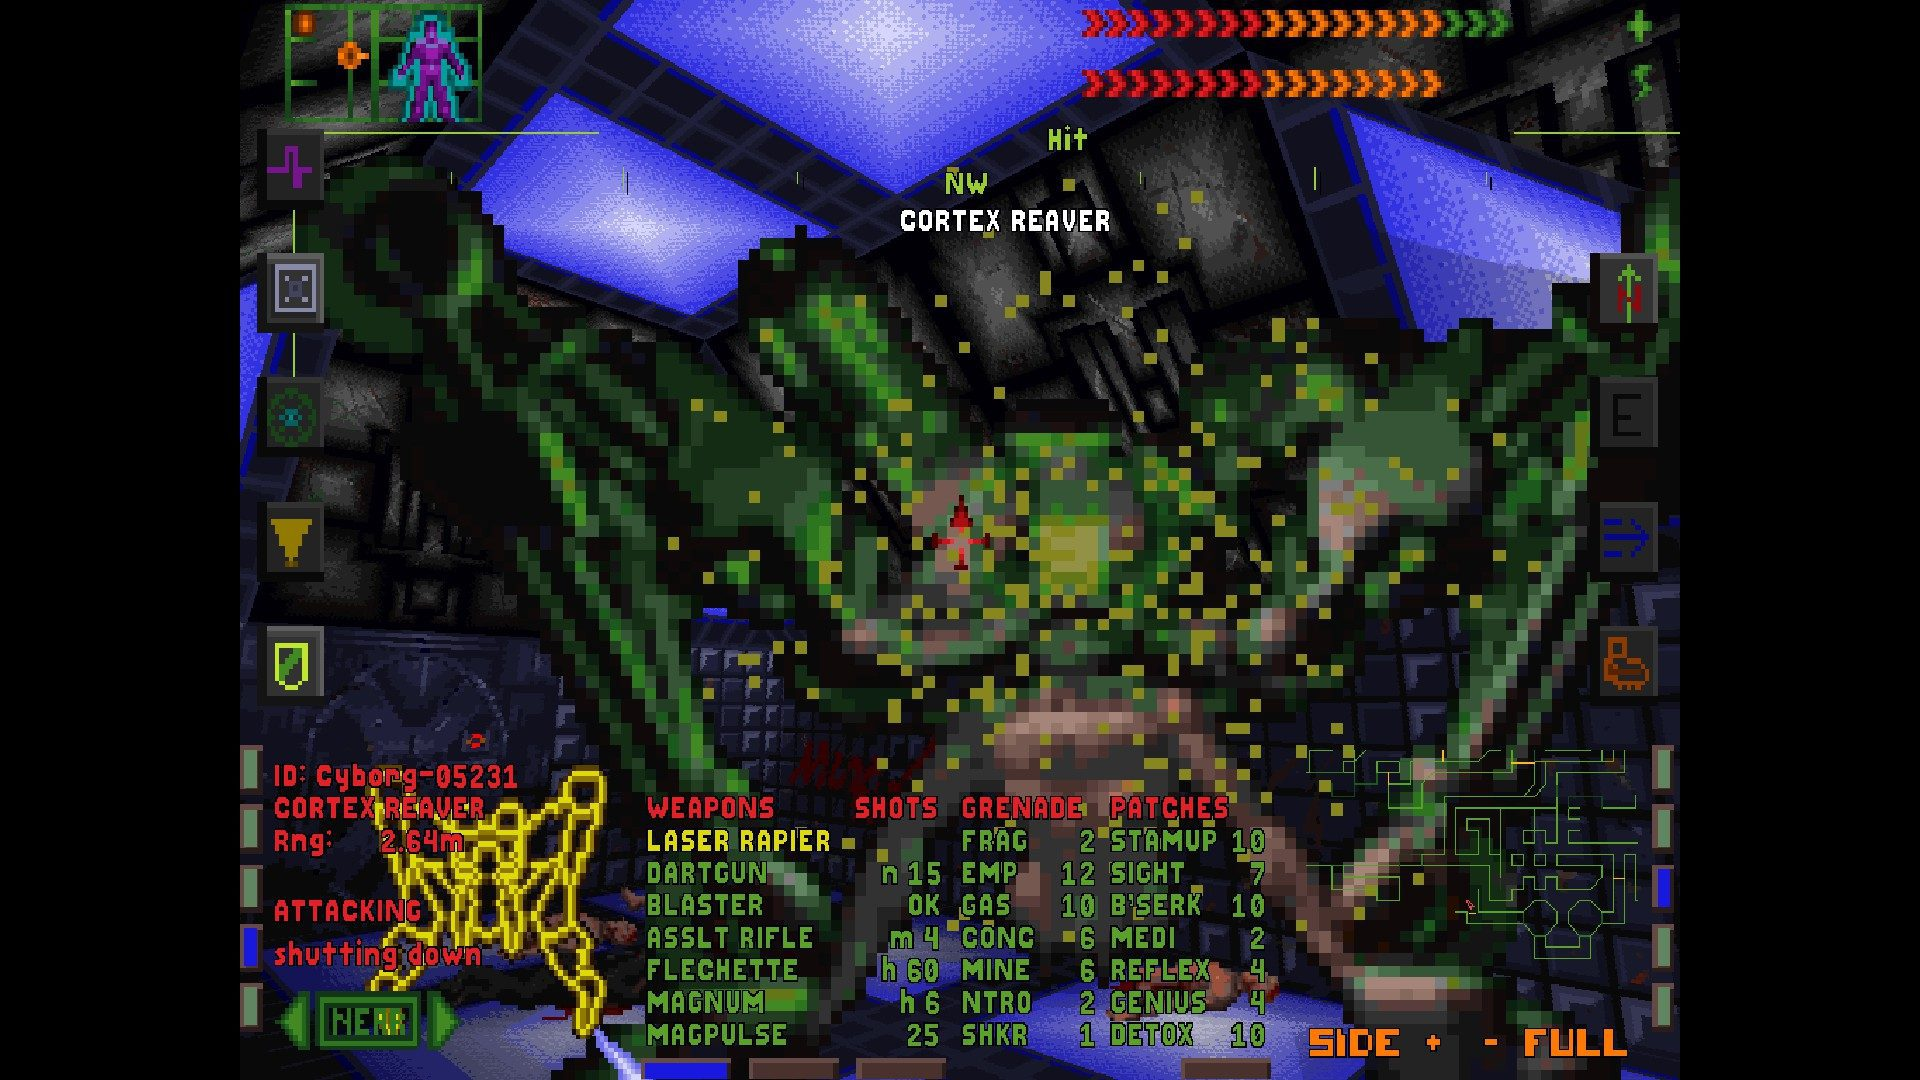 System Shock is getting a remake | PC Gamer